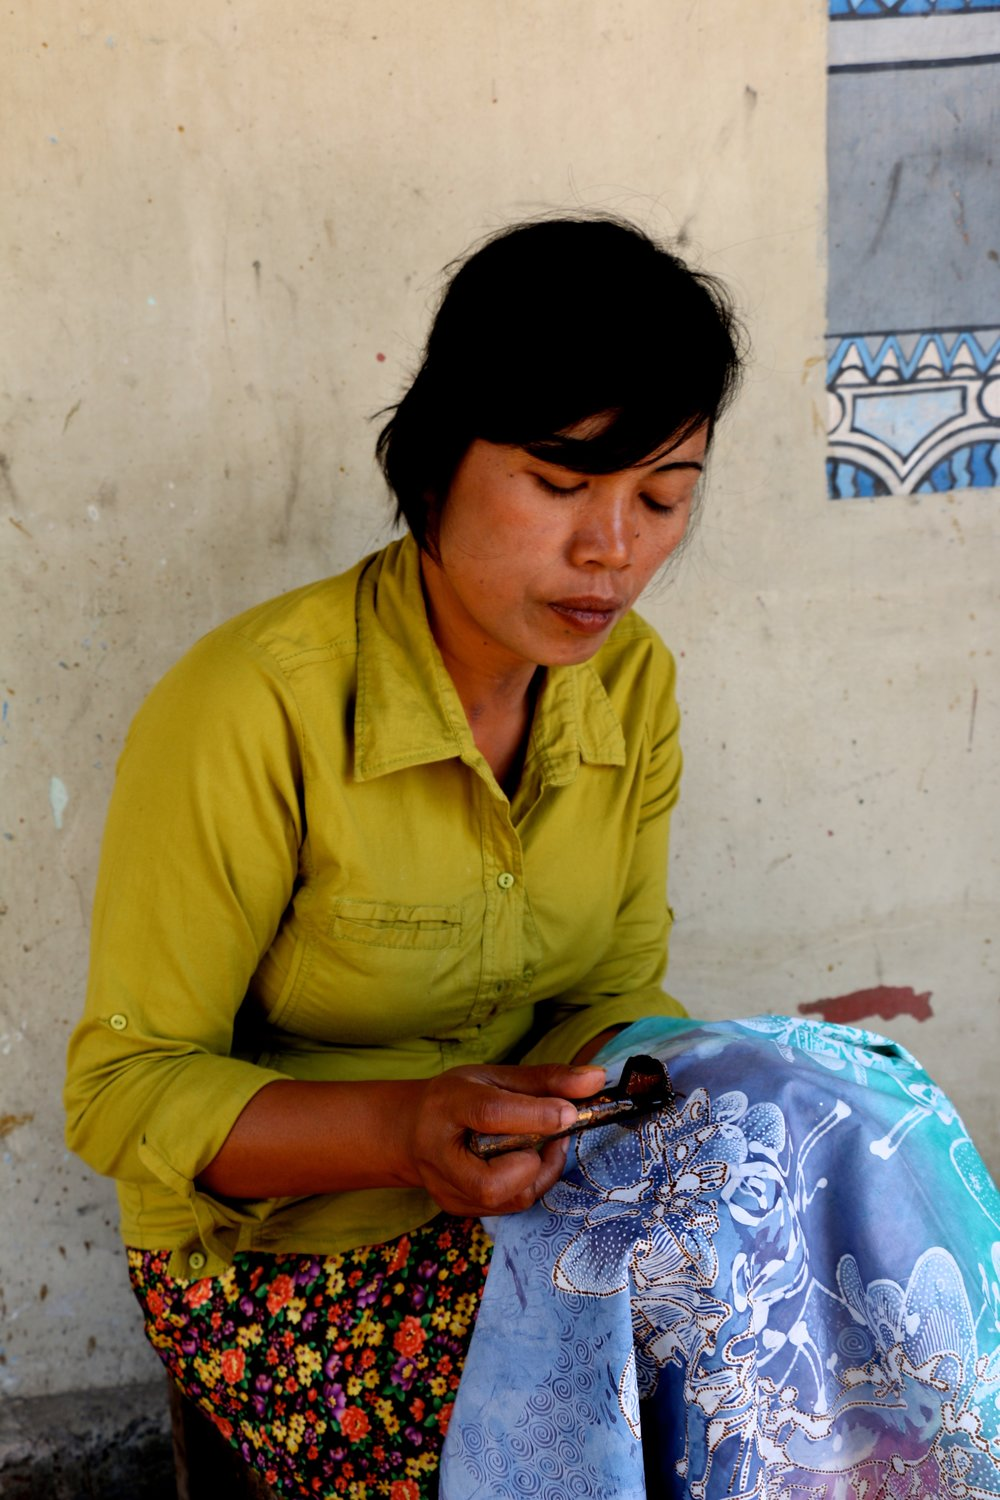 A woman working on batik